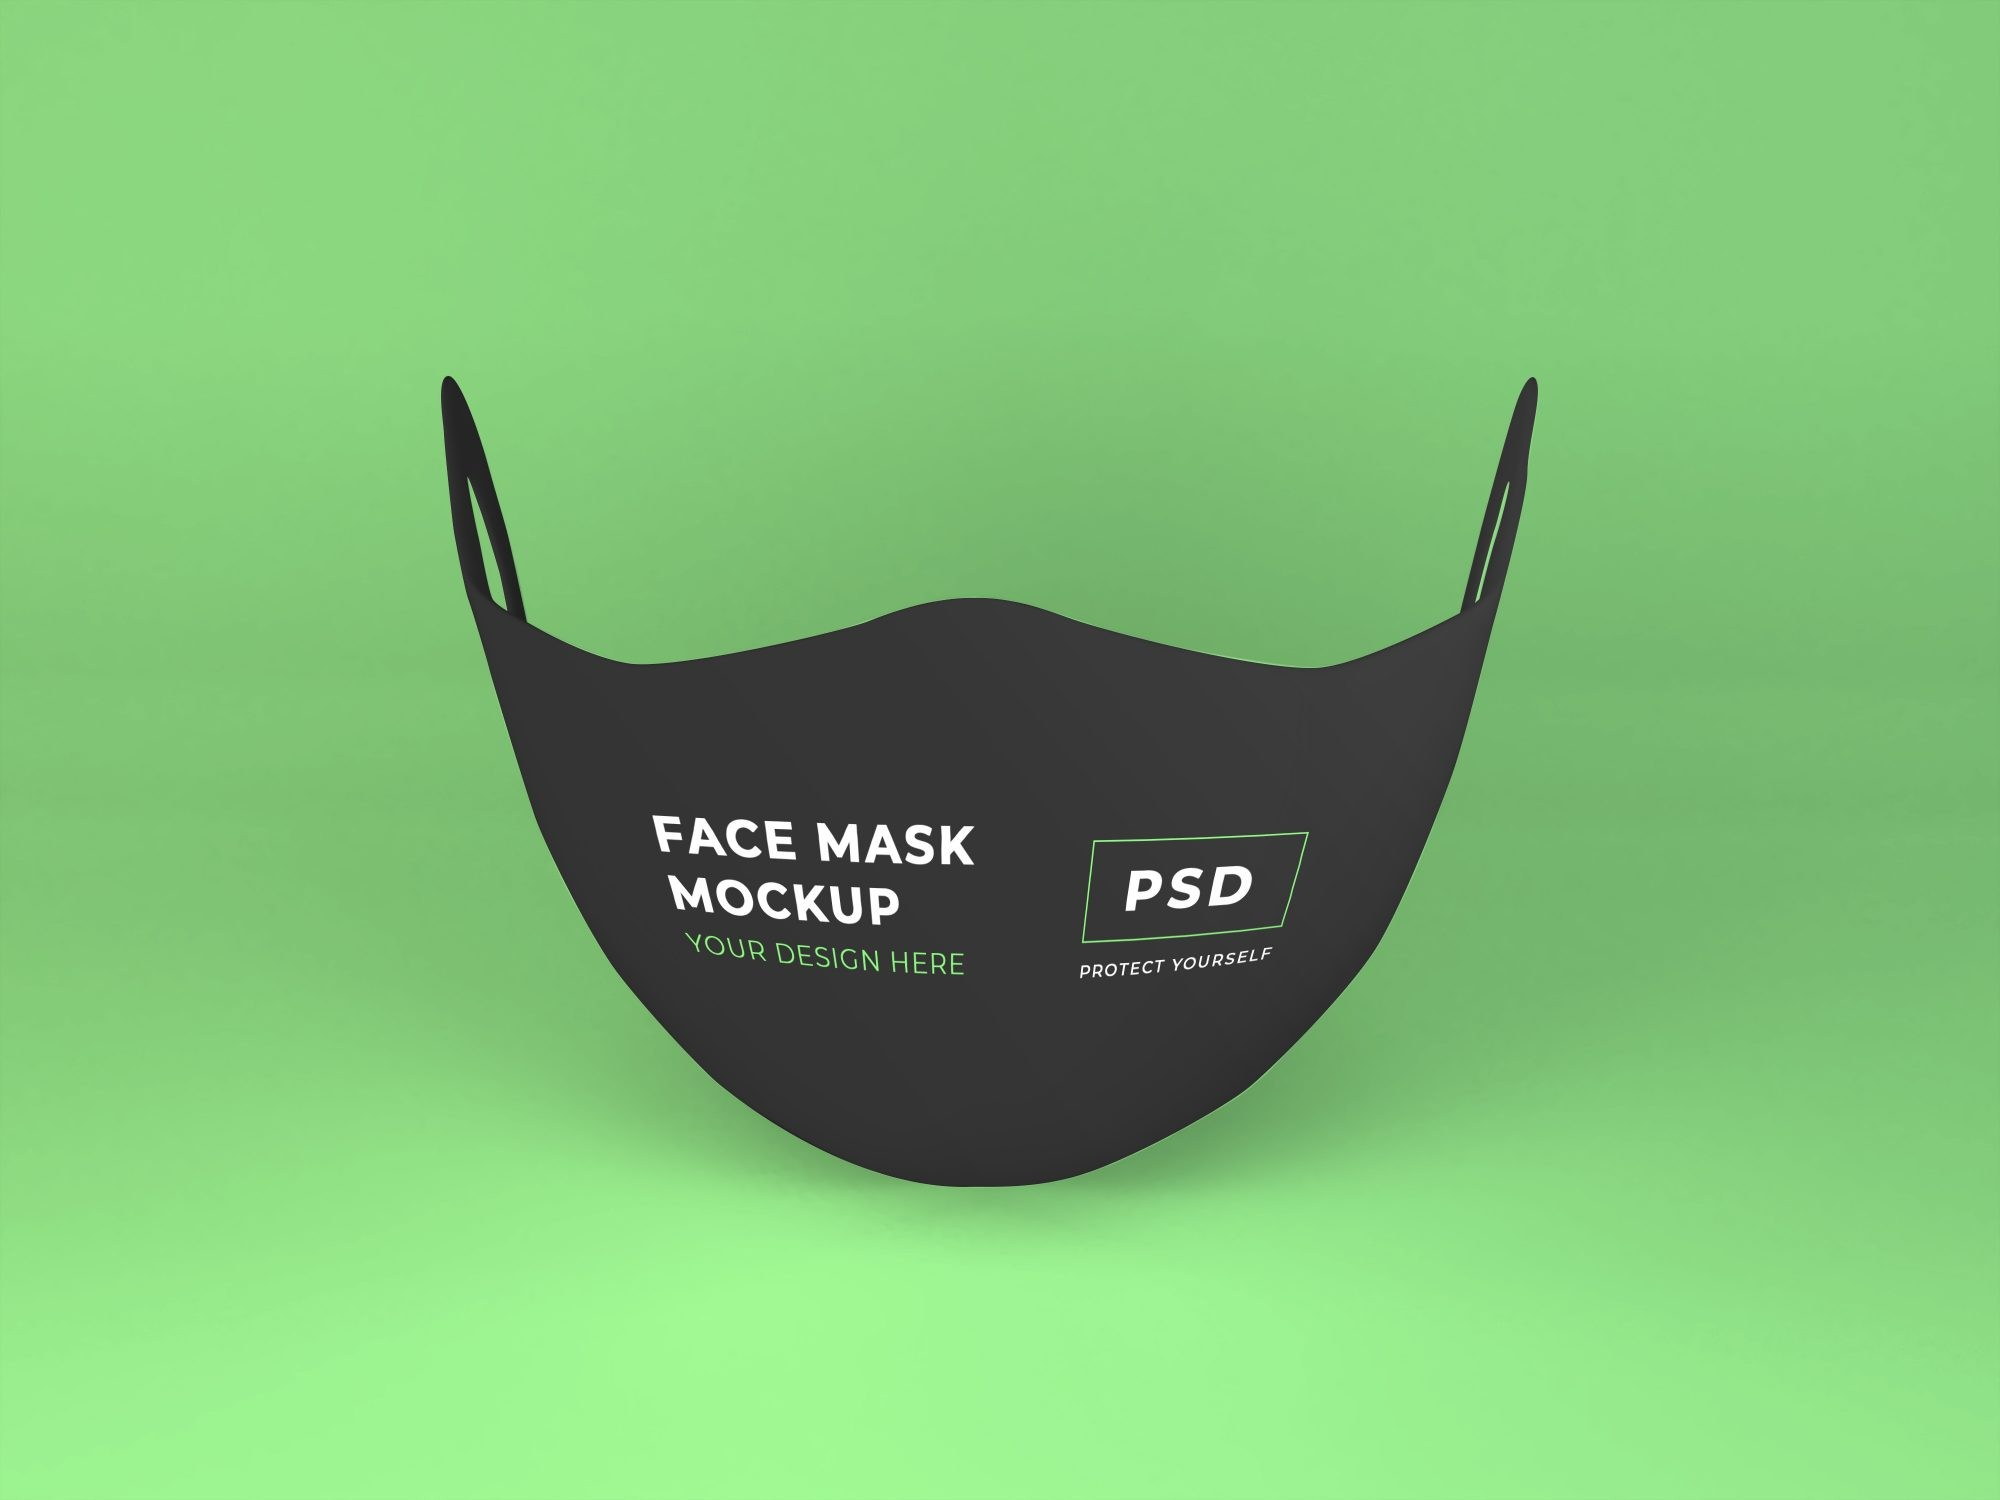 Realistic Face Mask Mockup Template